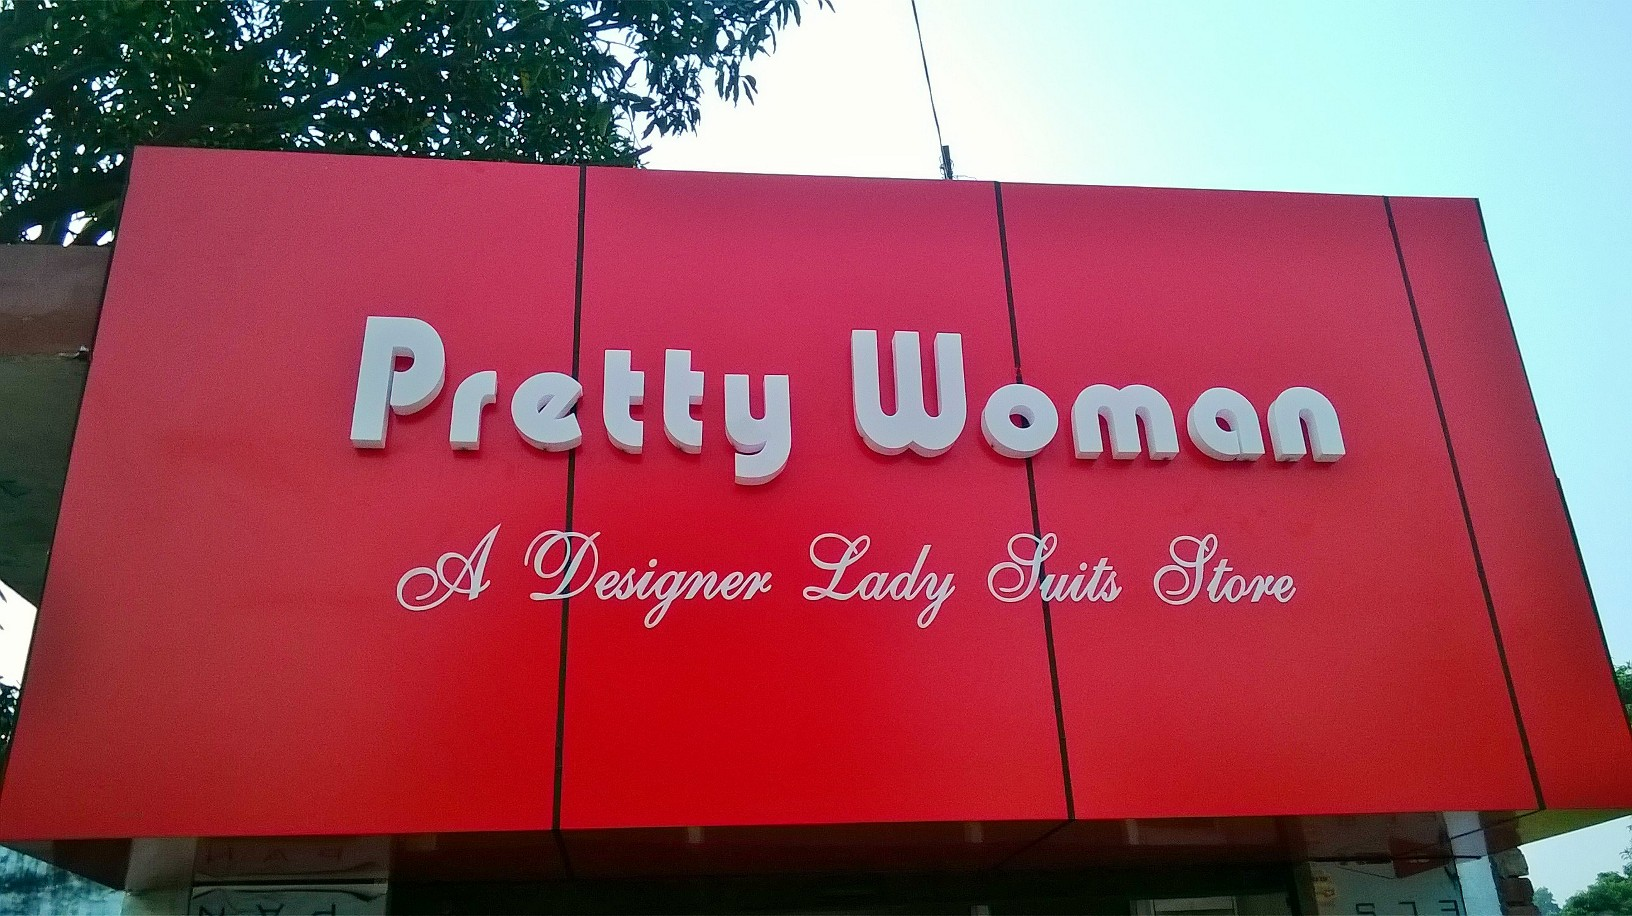 Pretty Woman - logo